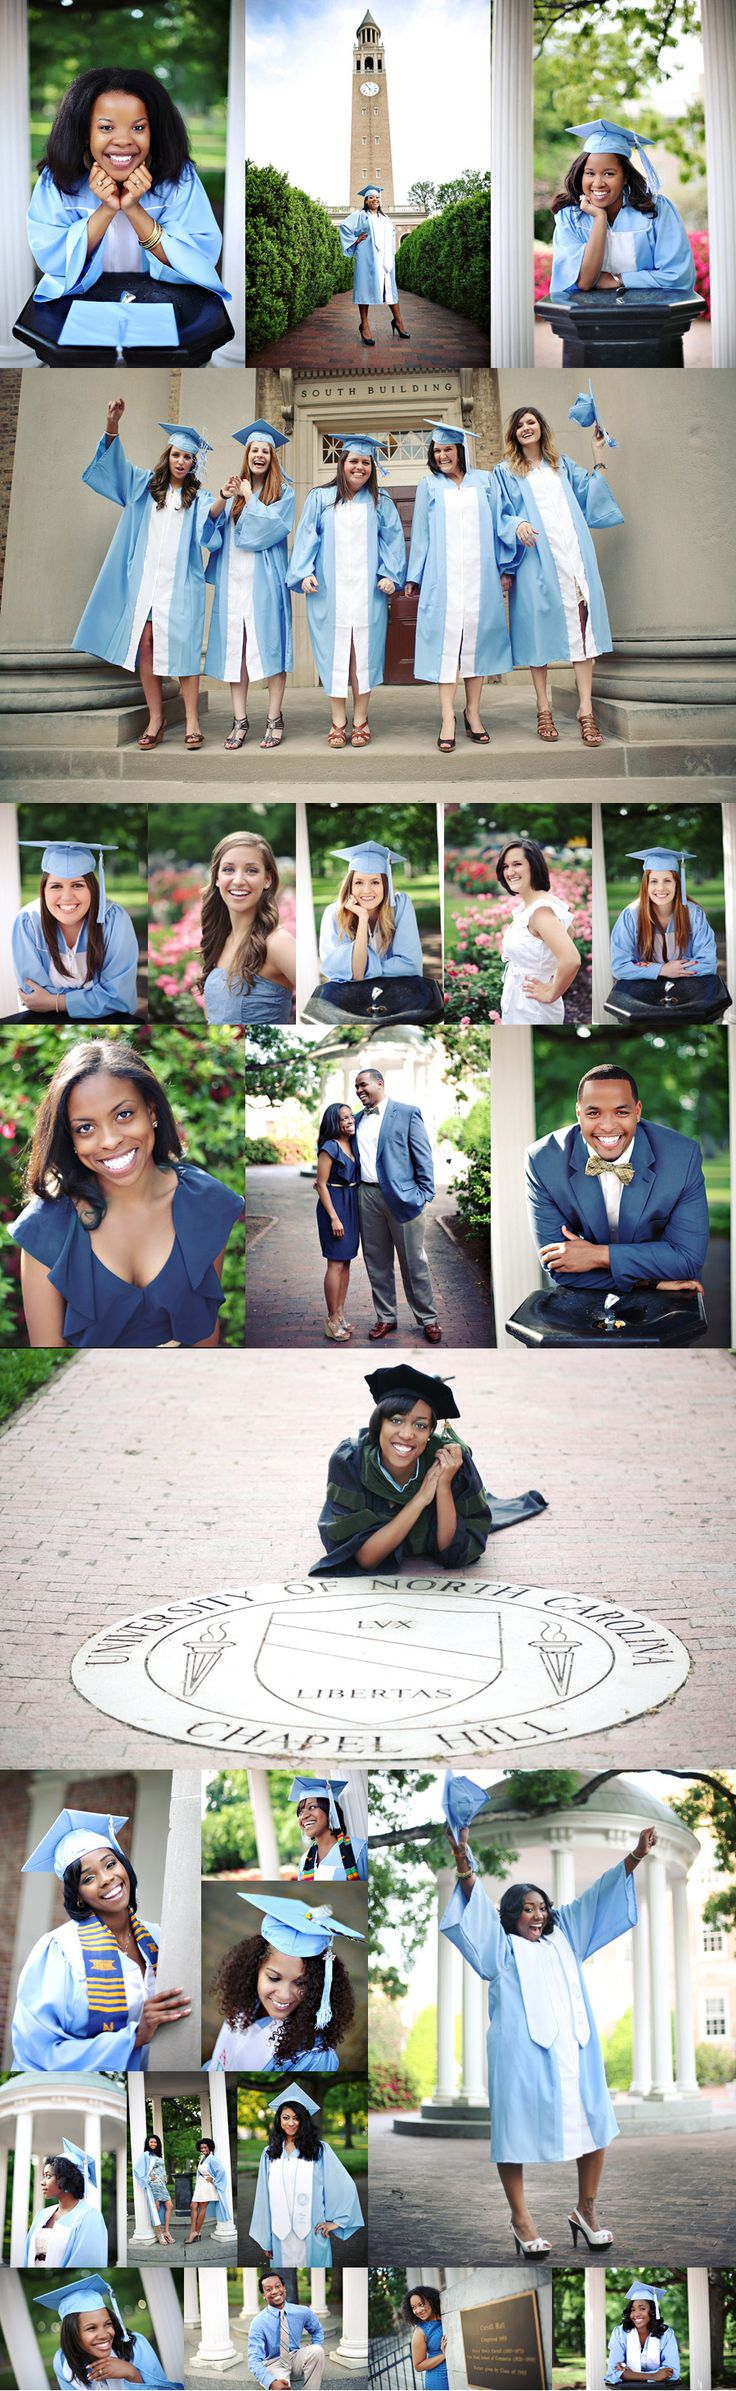 Senior graduation portraits, Posing, friends, flowers all around the campus. I really like this idea.